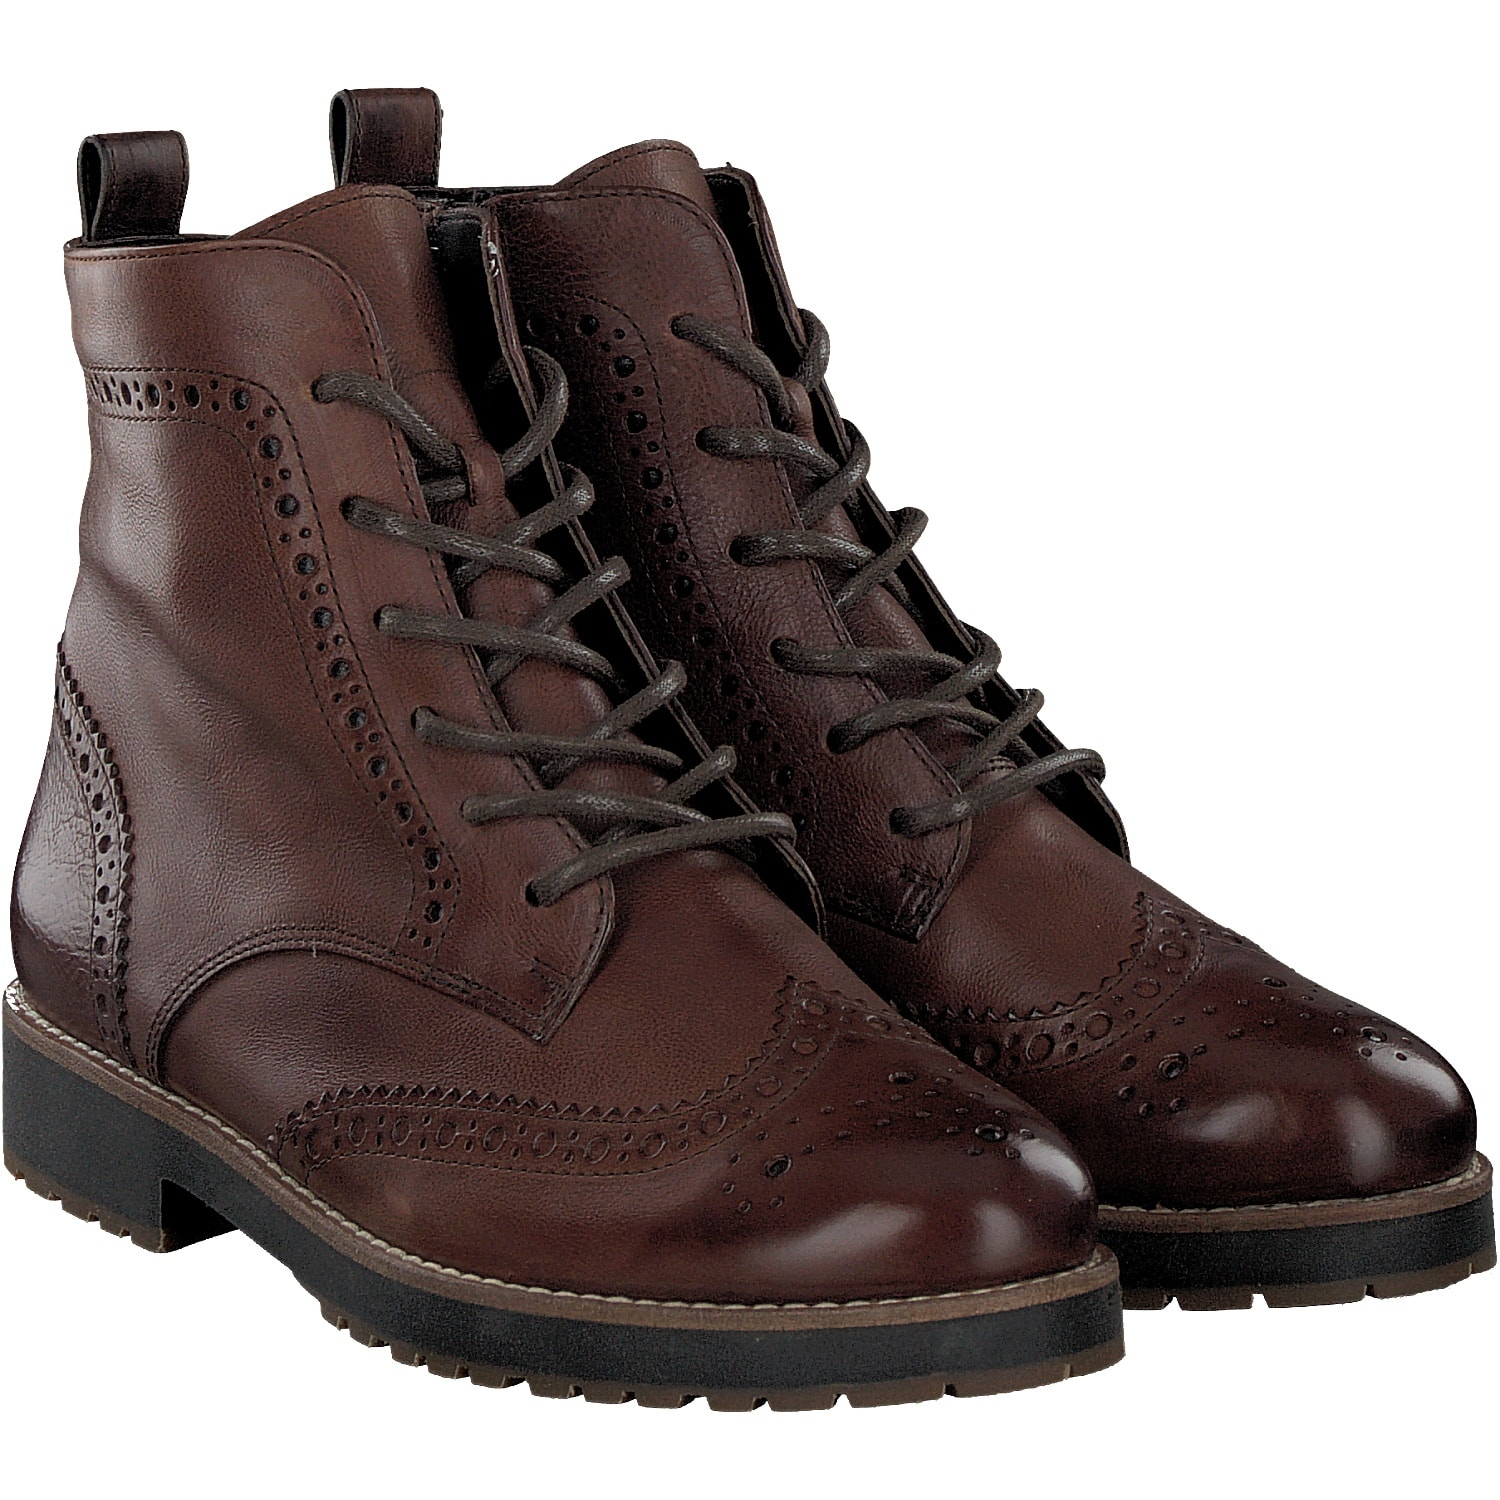 on sale b0d8e 74f11 Stiefelette